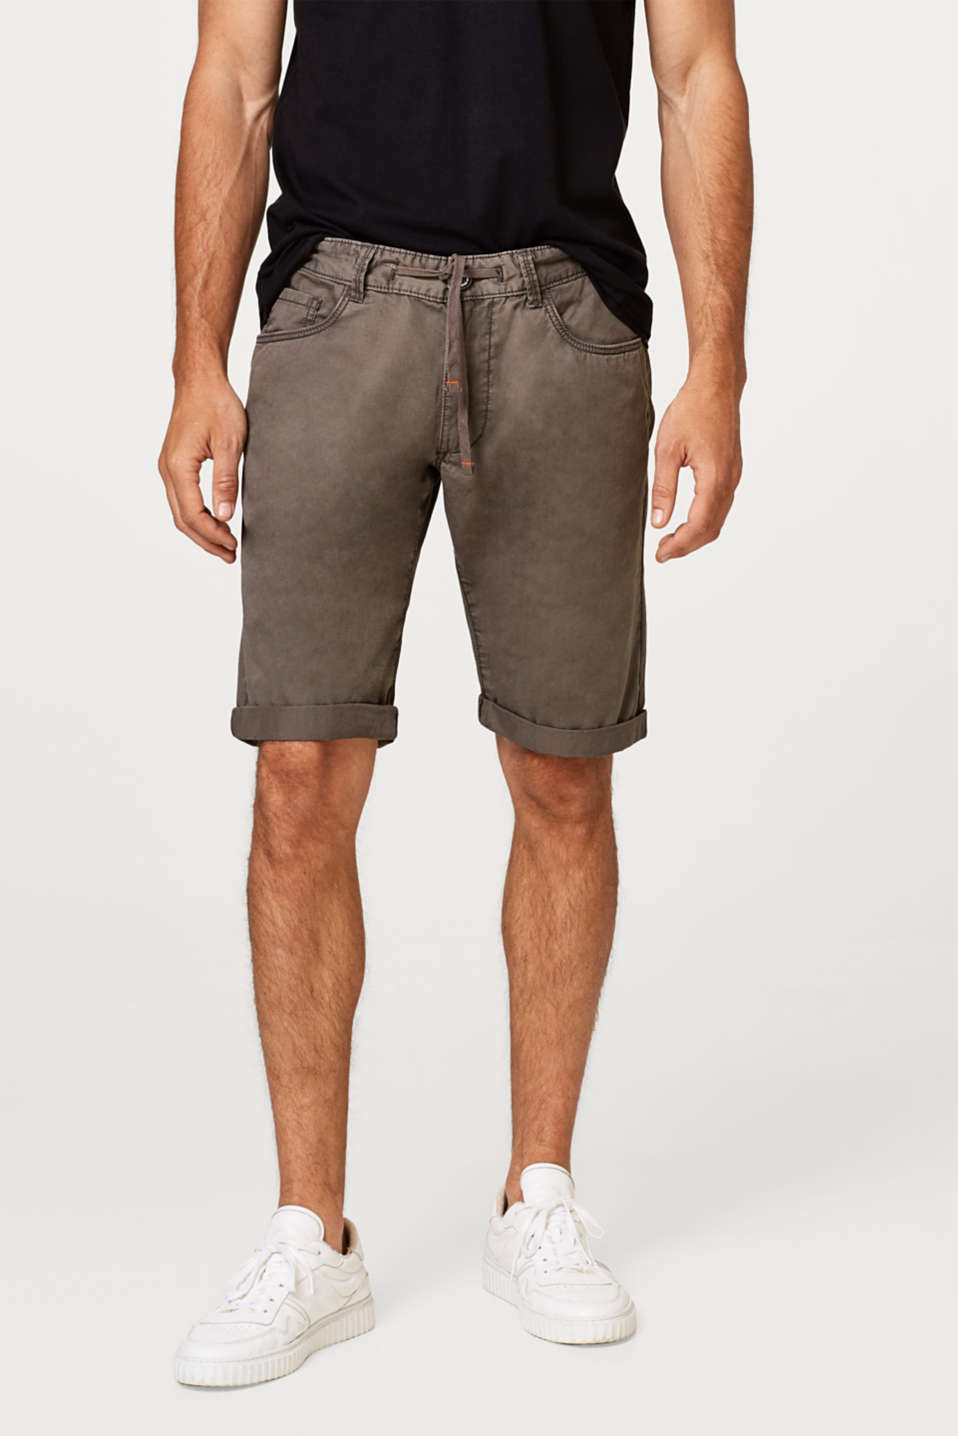 edc - Chino shorts with drawstring, made of cotton